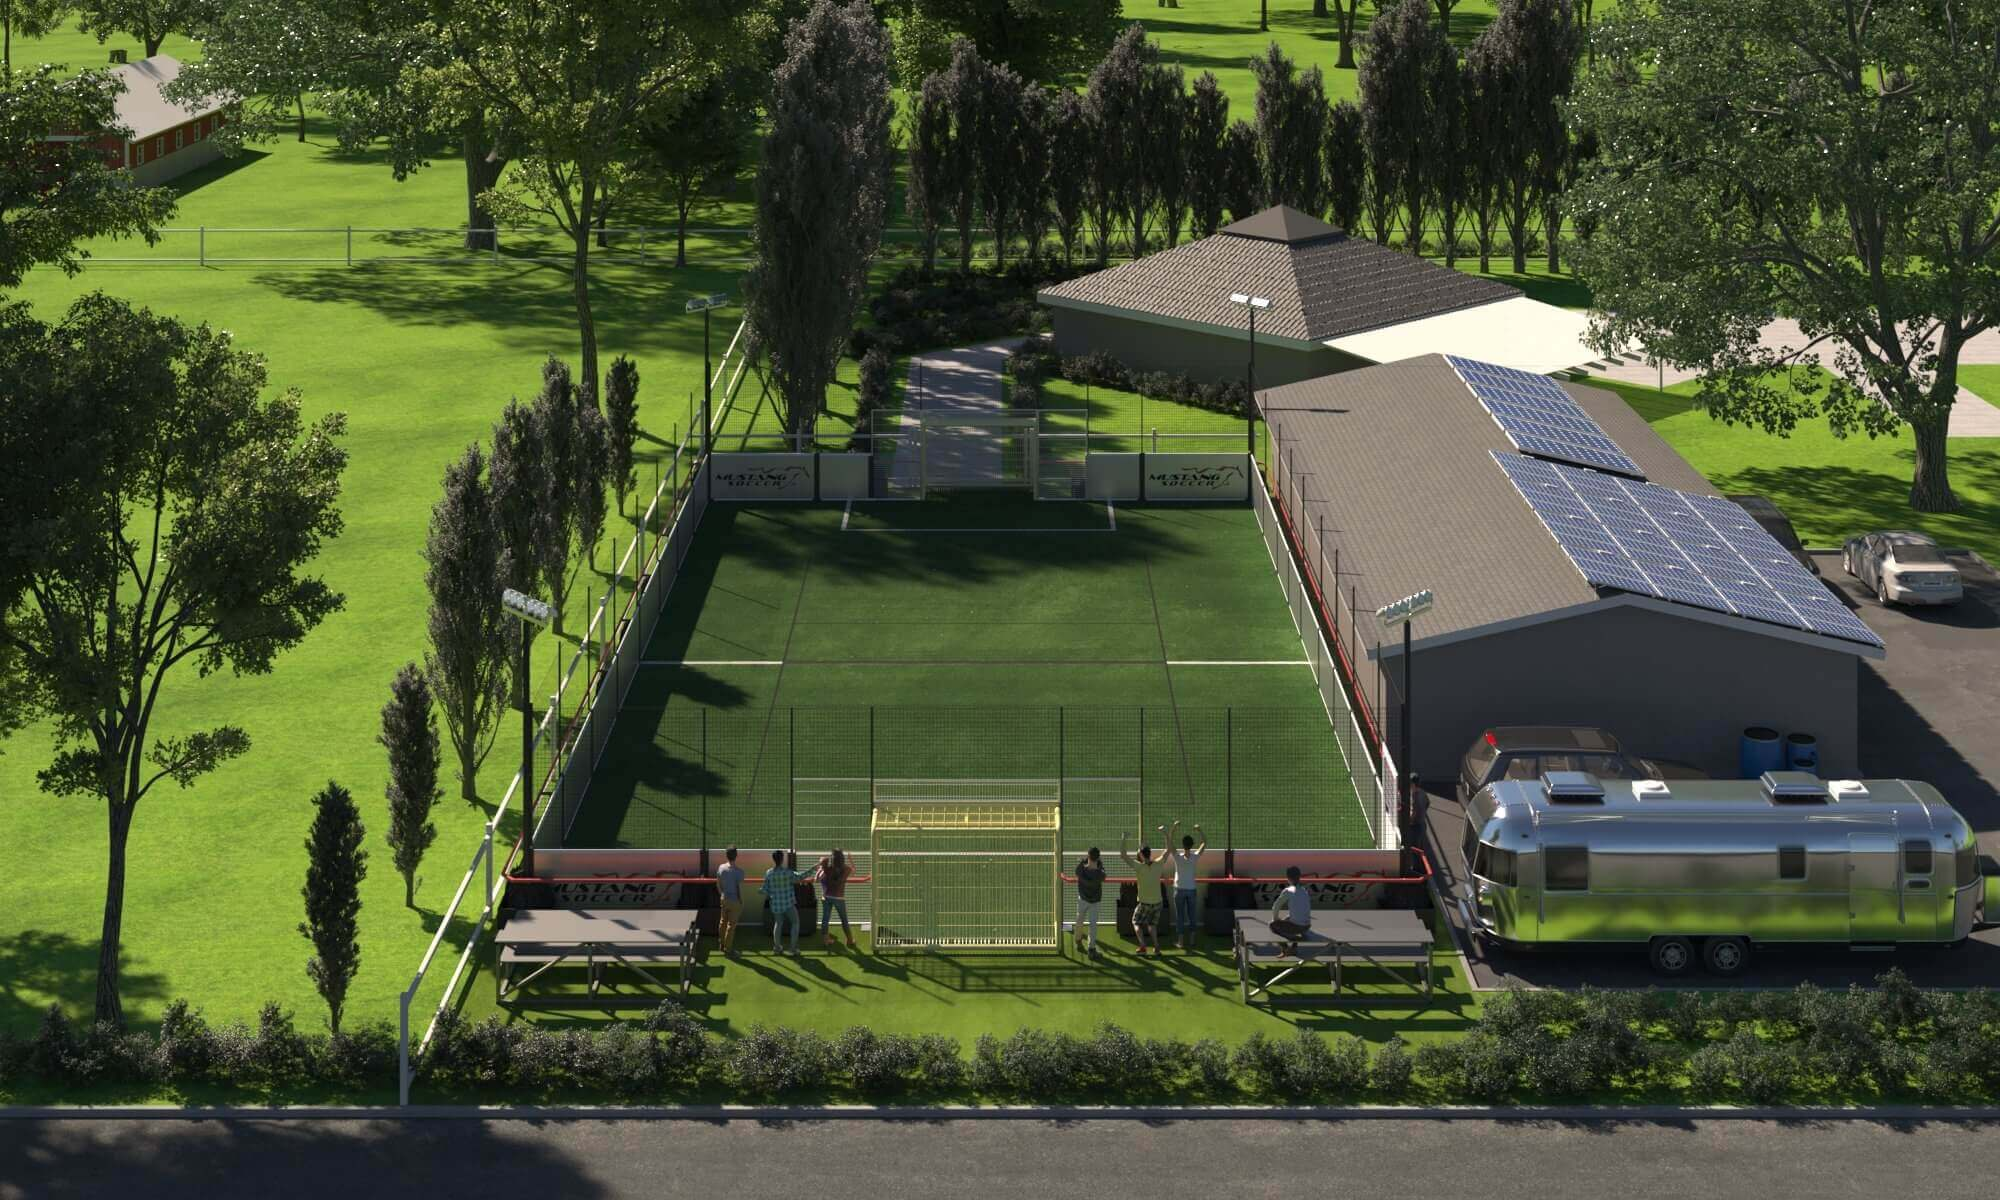 Backyard Soccer Field: The Ideal Way to Construct One